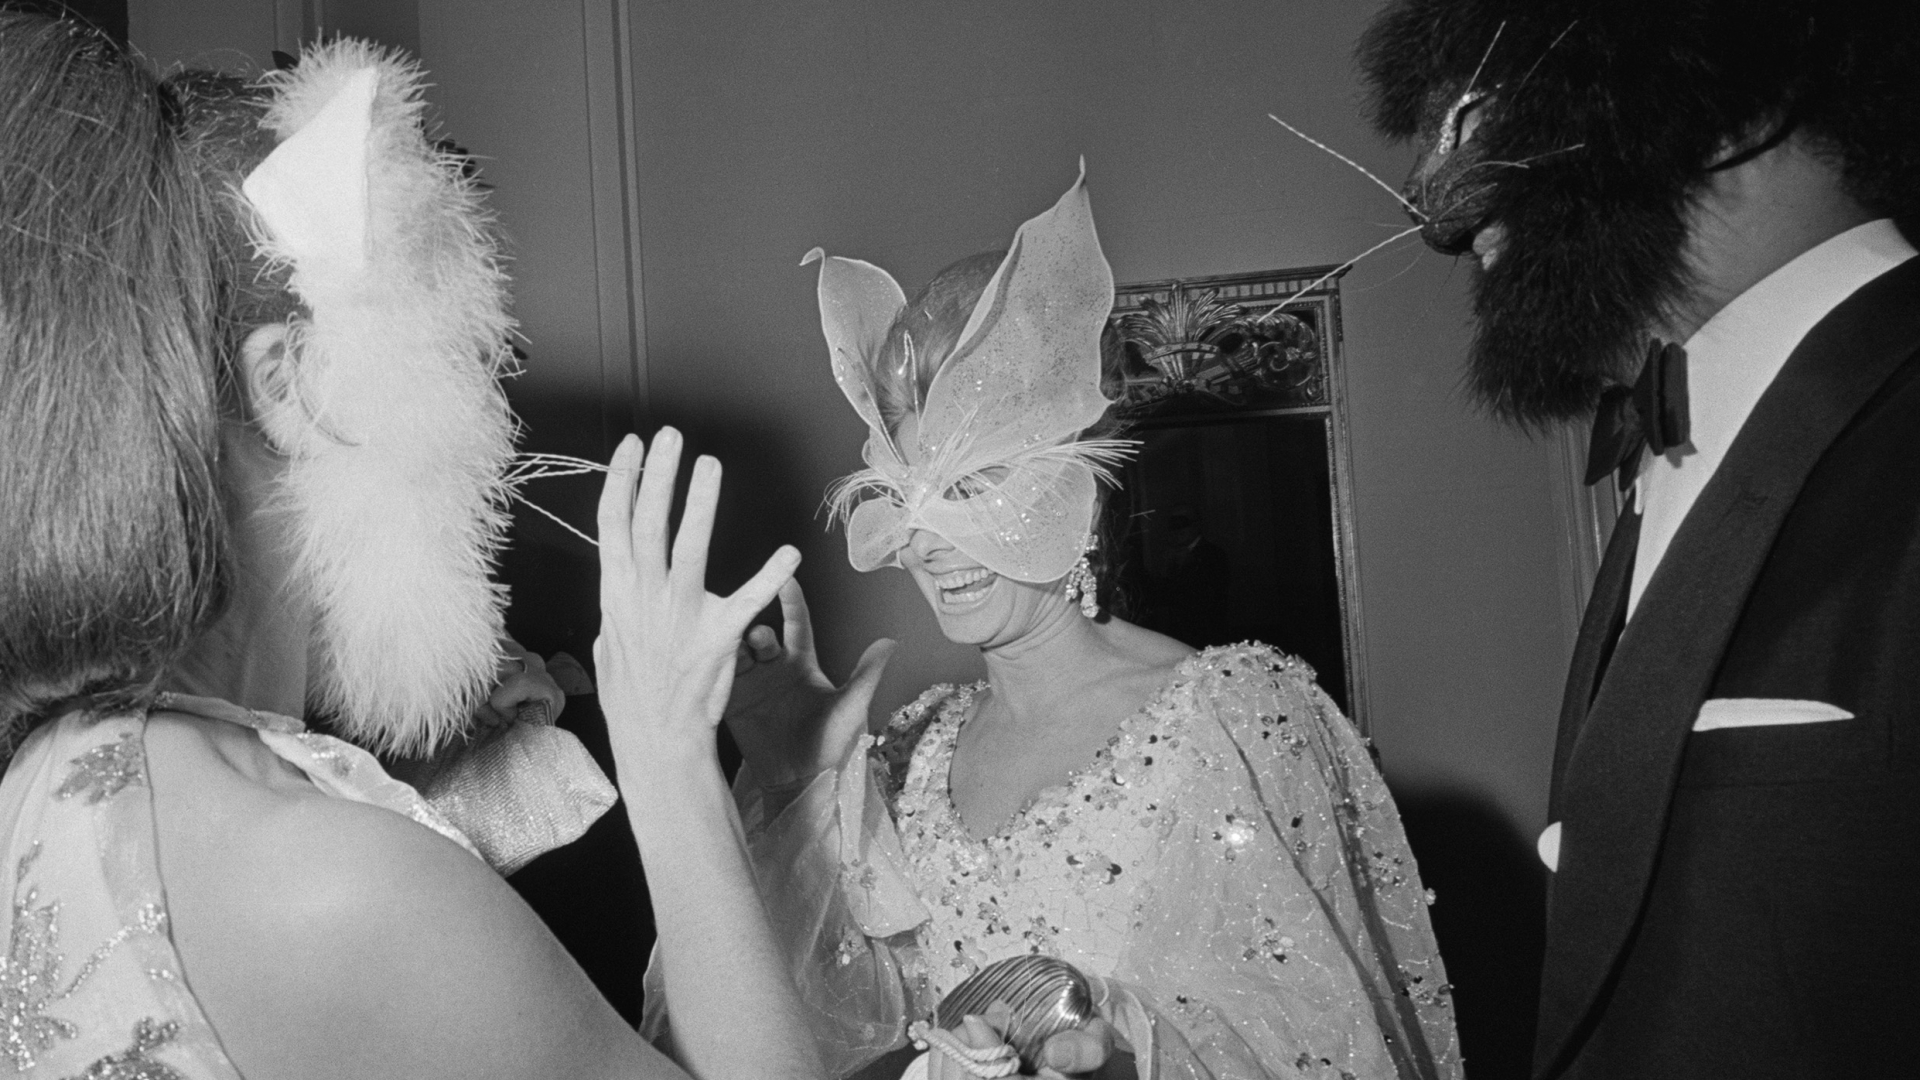 Vogue Editor Francoise Langlade (left) and Oscar de la Renta (right) in cat masks speaking with Anne McDonnell, wife of Henry Ford, in a butterfly mask. (Credit: Harry Benson/Daily Express/Hulton Archive/Getty Images)